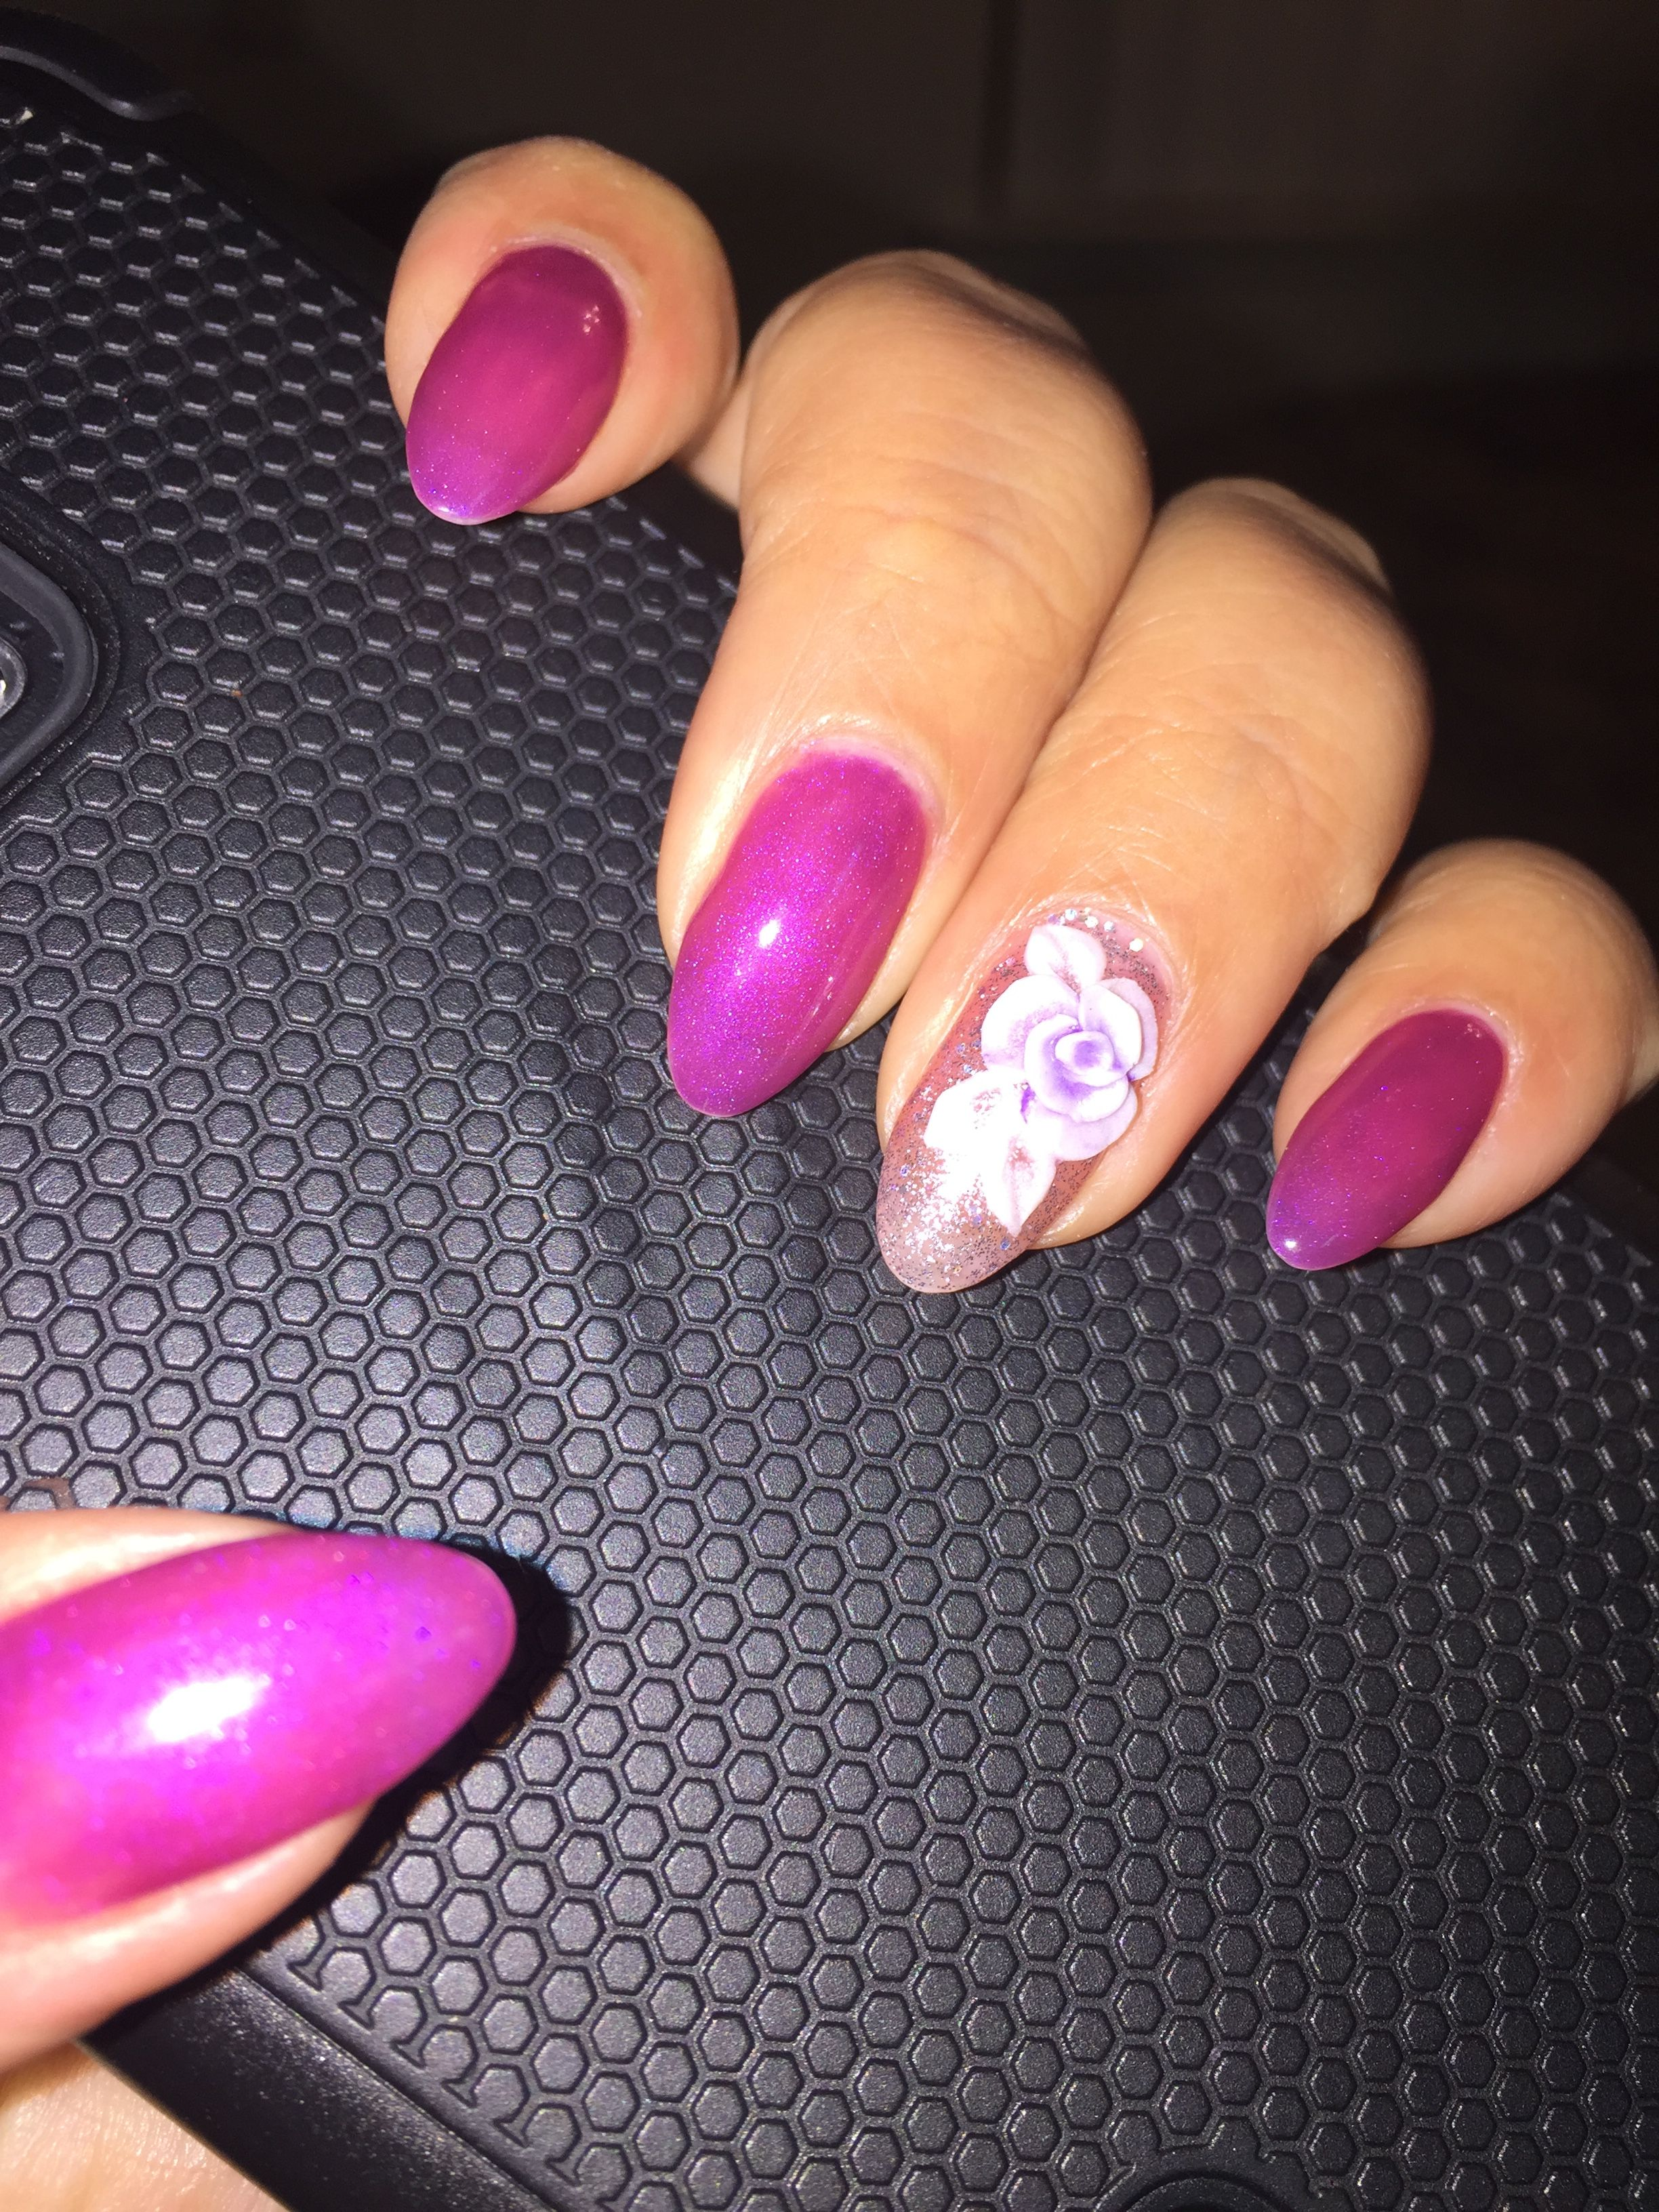 Purple almond shaped nails with a 3D flower. Love them!